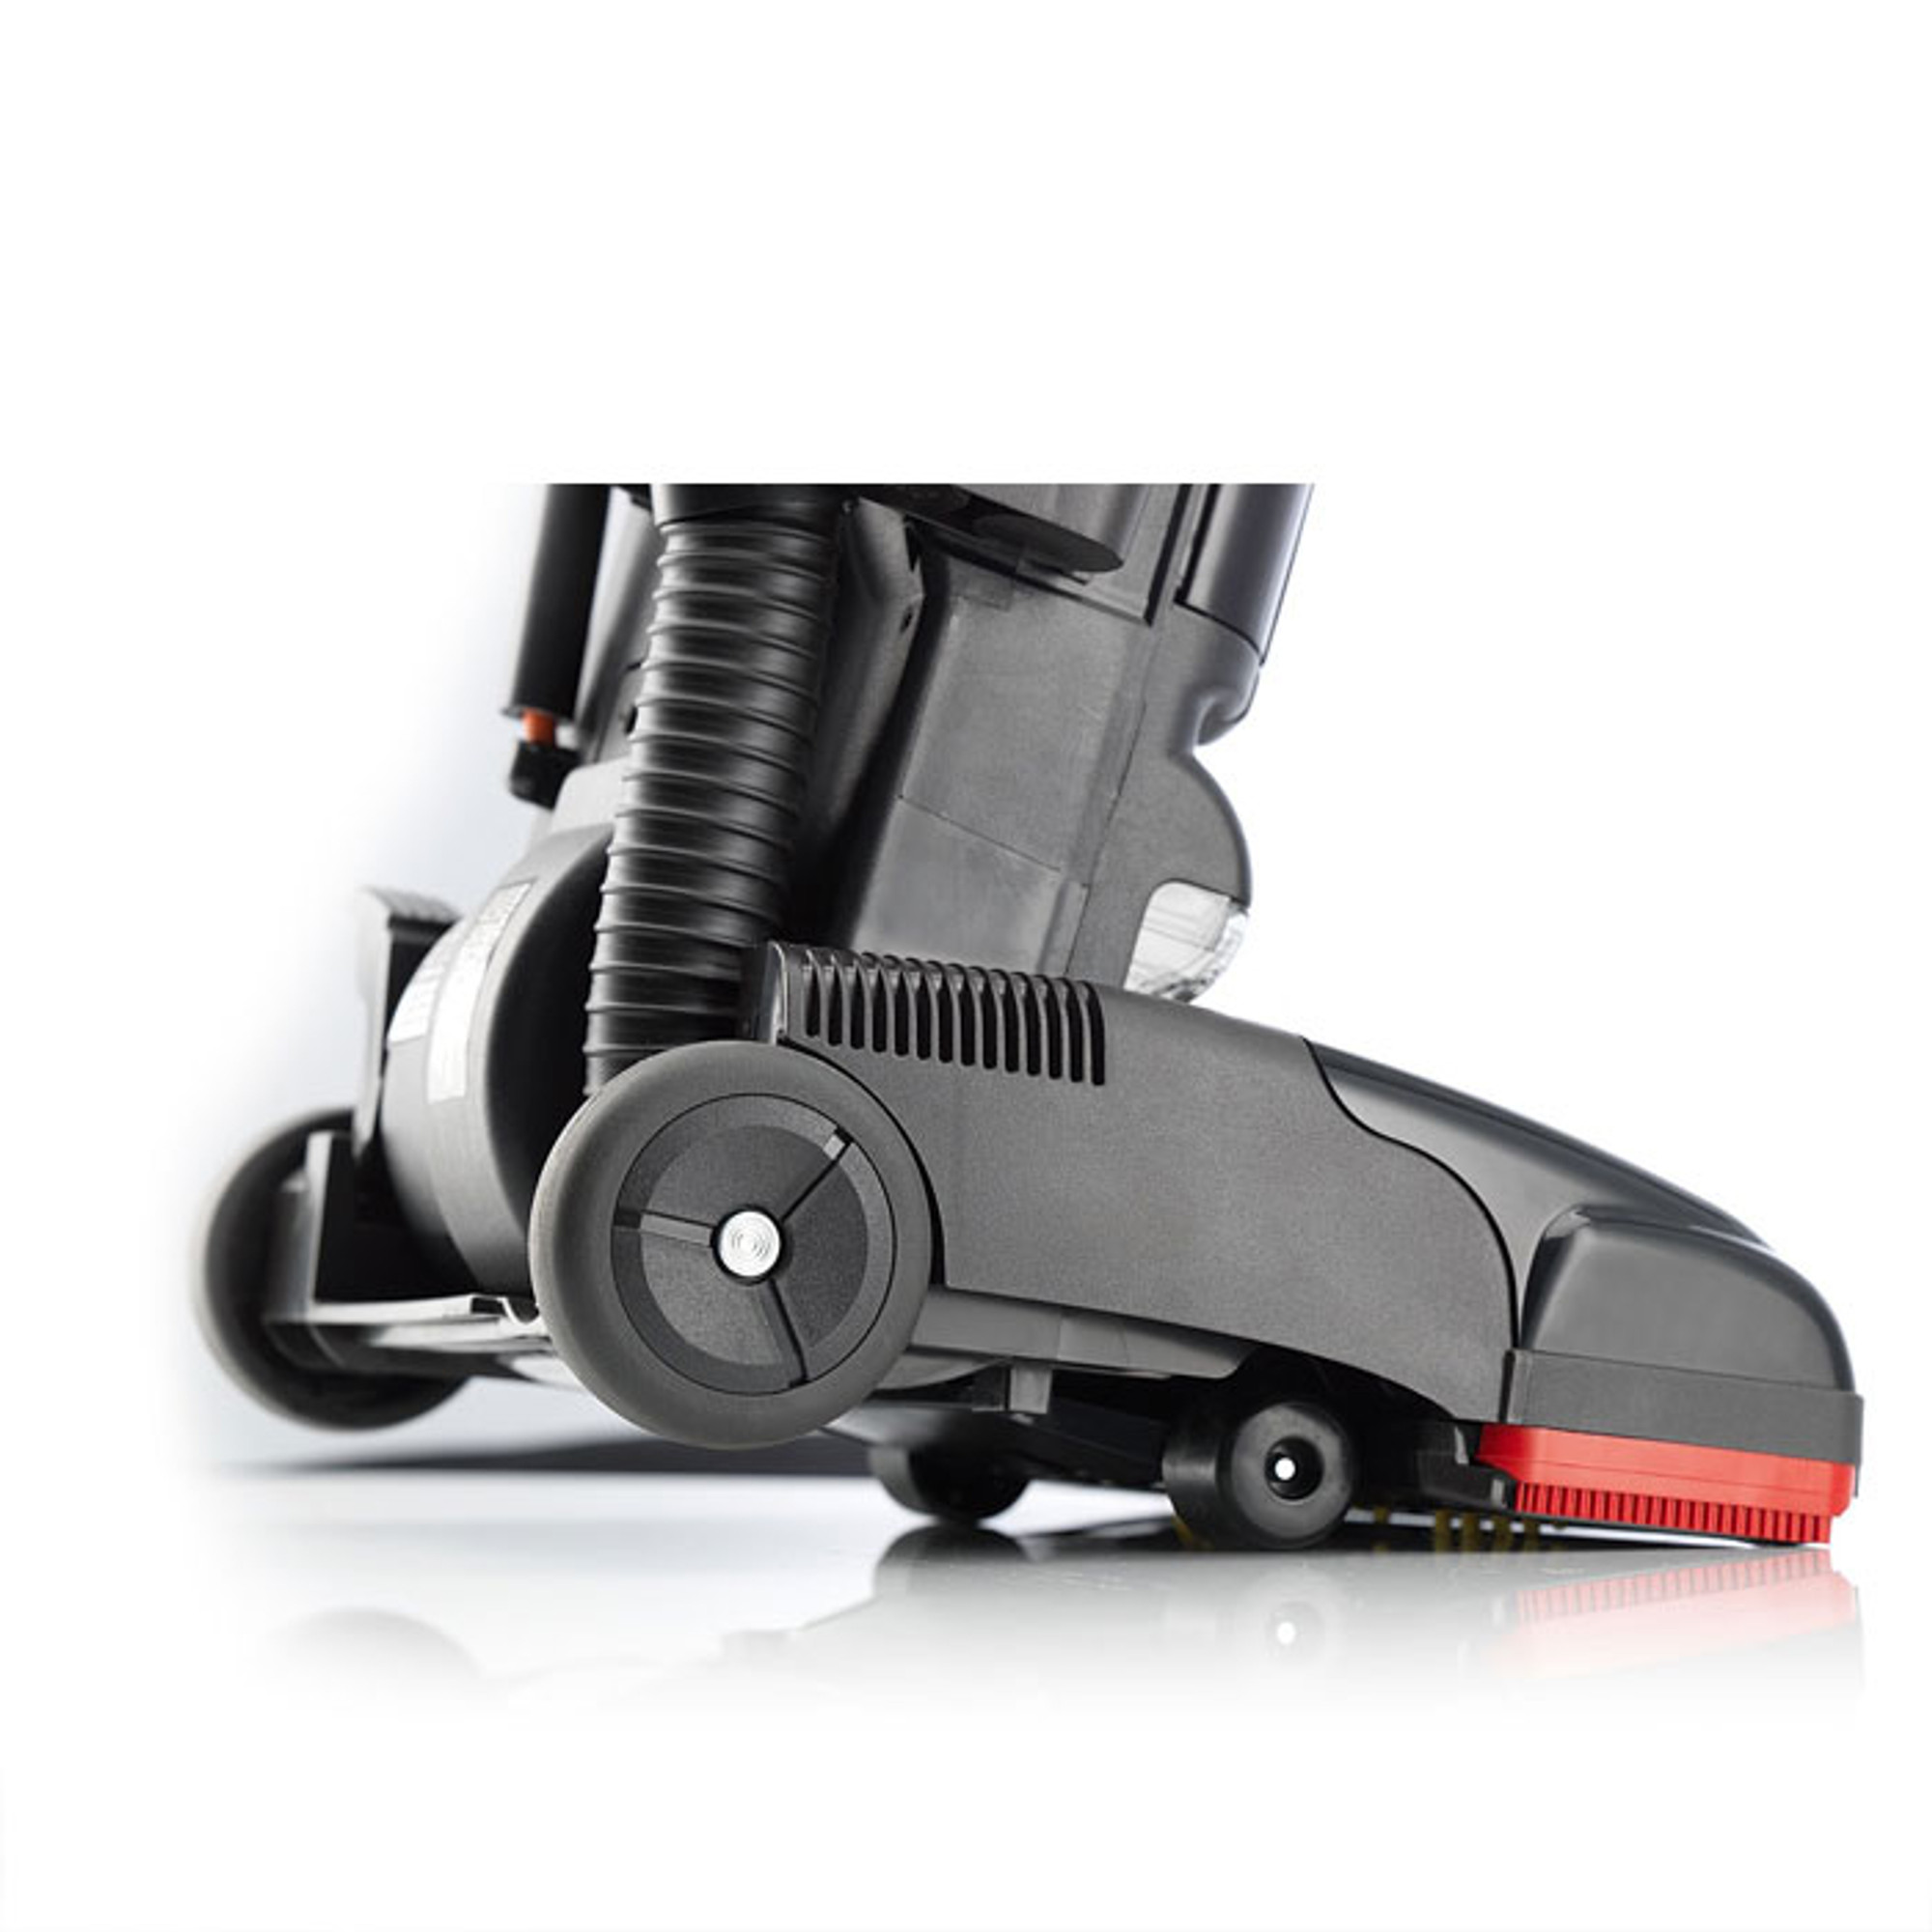 Buy Hoover C1703 900 WindTunnel Commercial Vacuum From